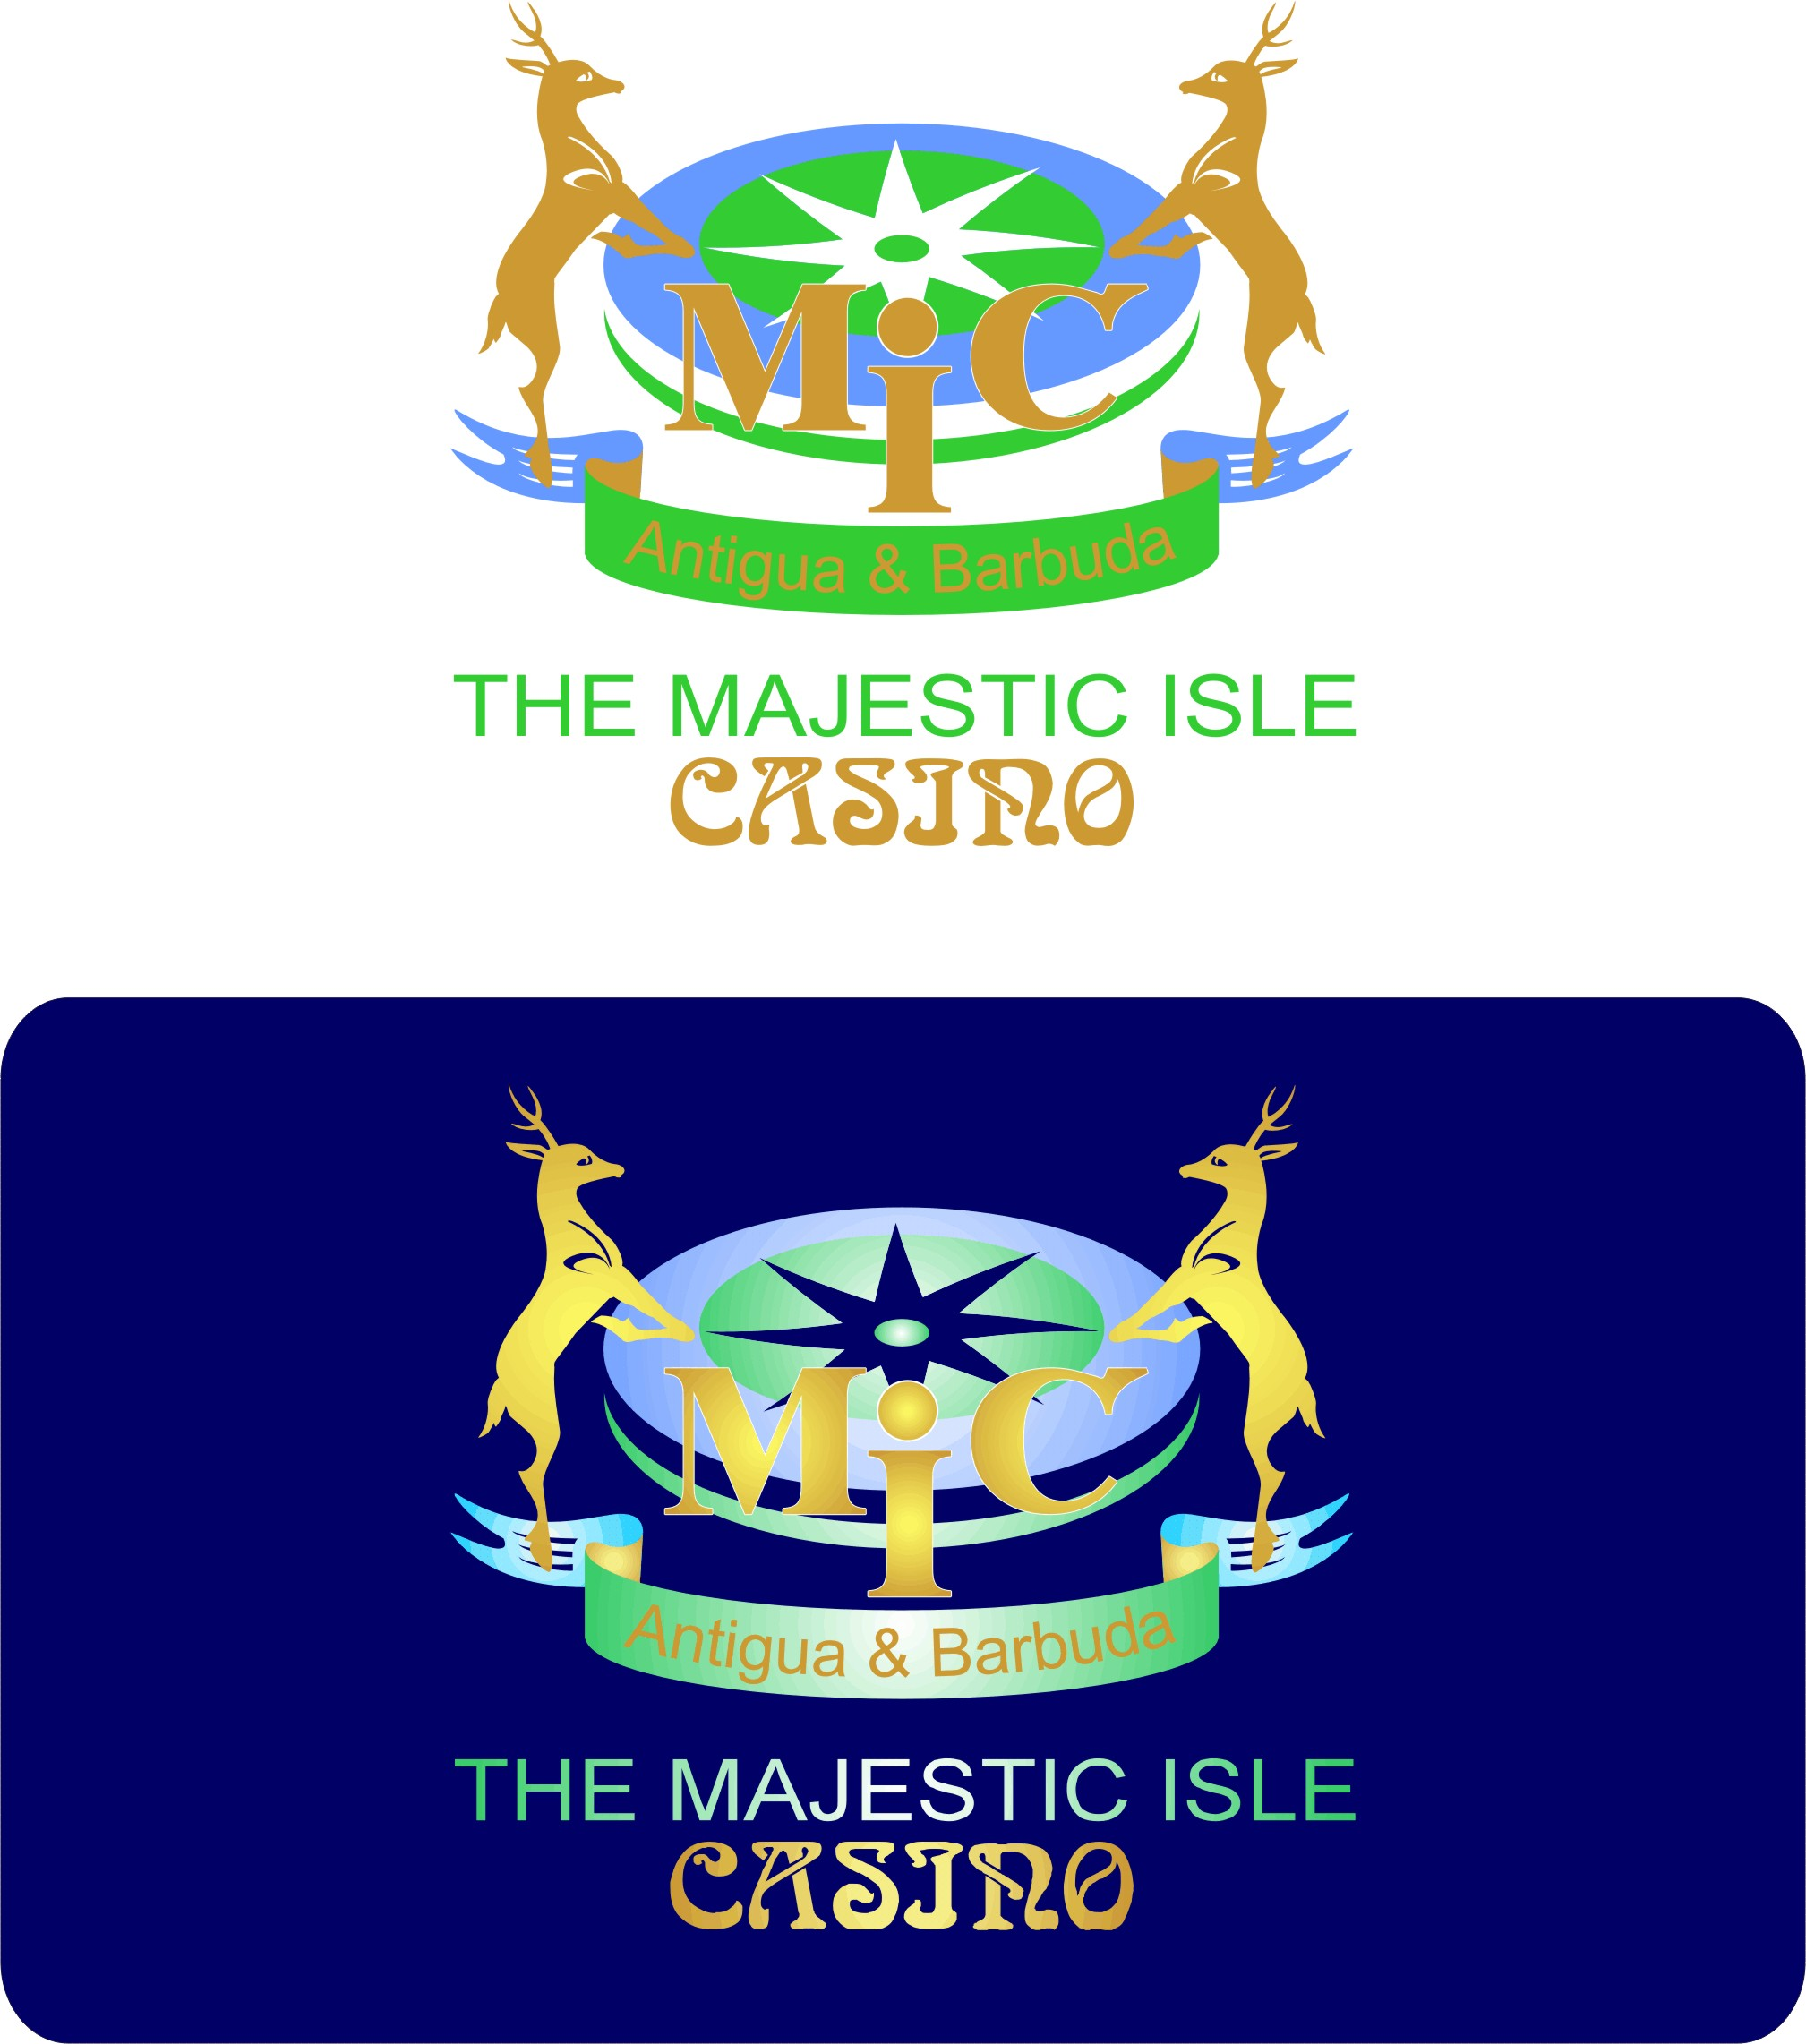 Logo Design by Korsunov Oleg - Entry No. 22 in the Logo Design Contest New Logo Design for The Majestic Isle Casino.